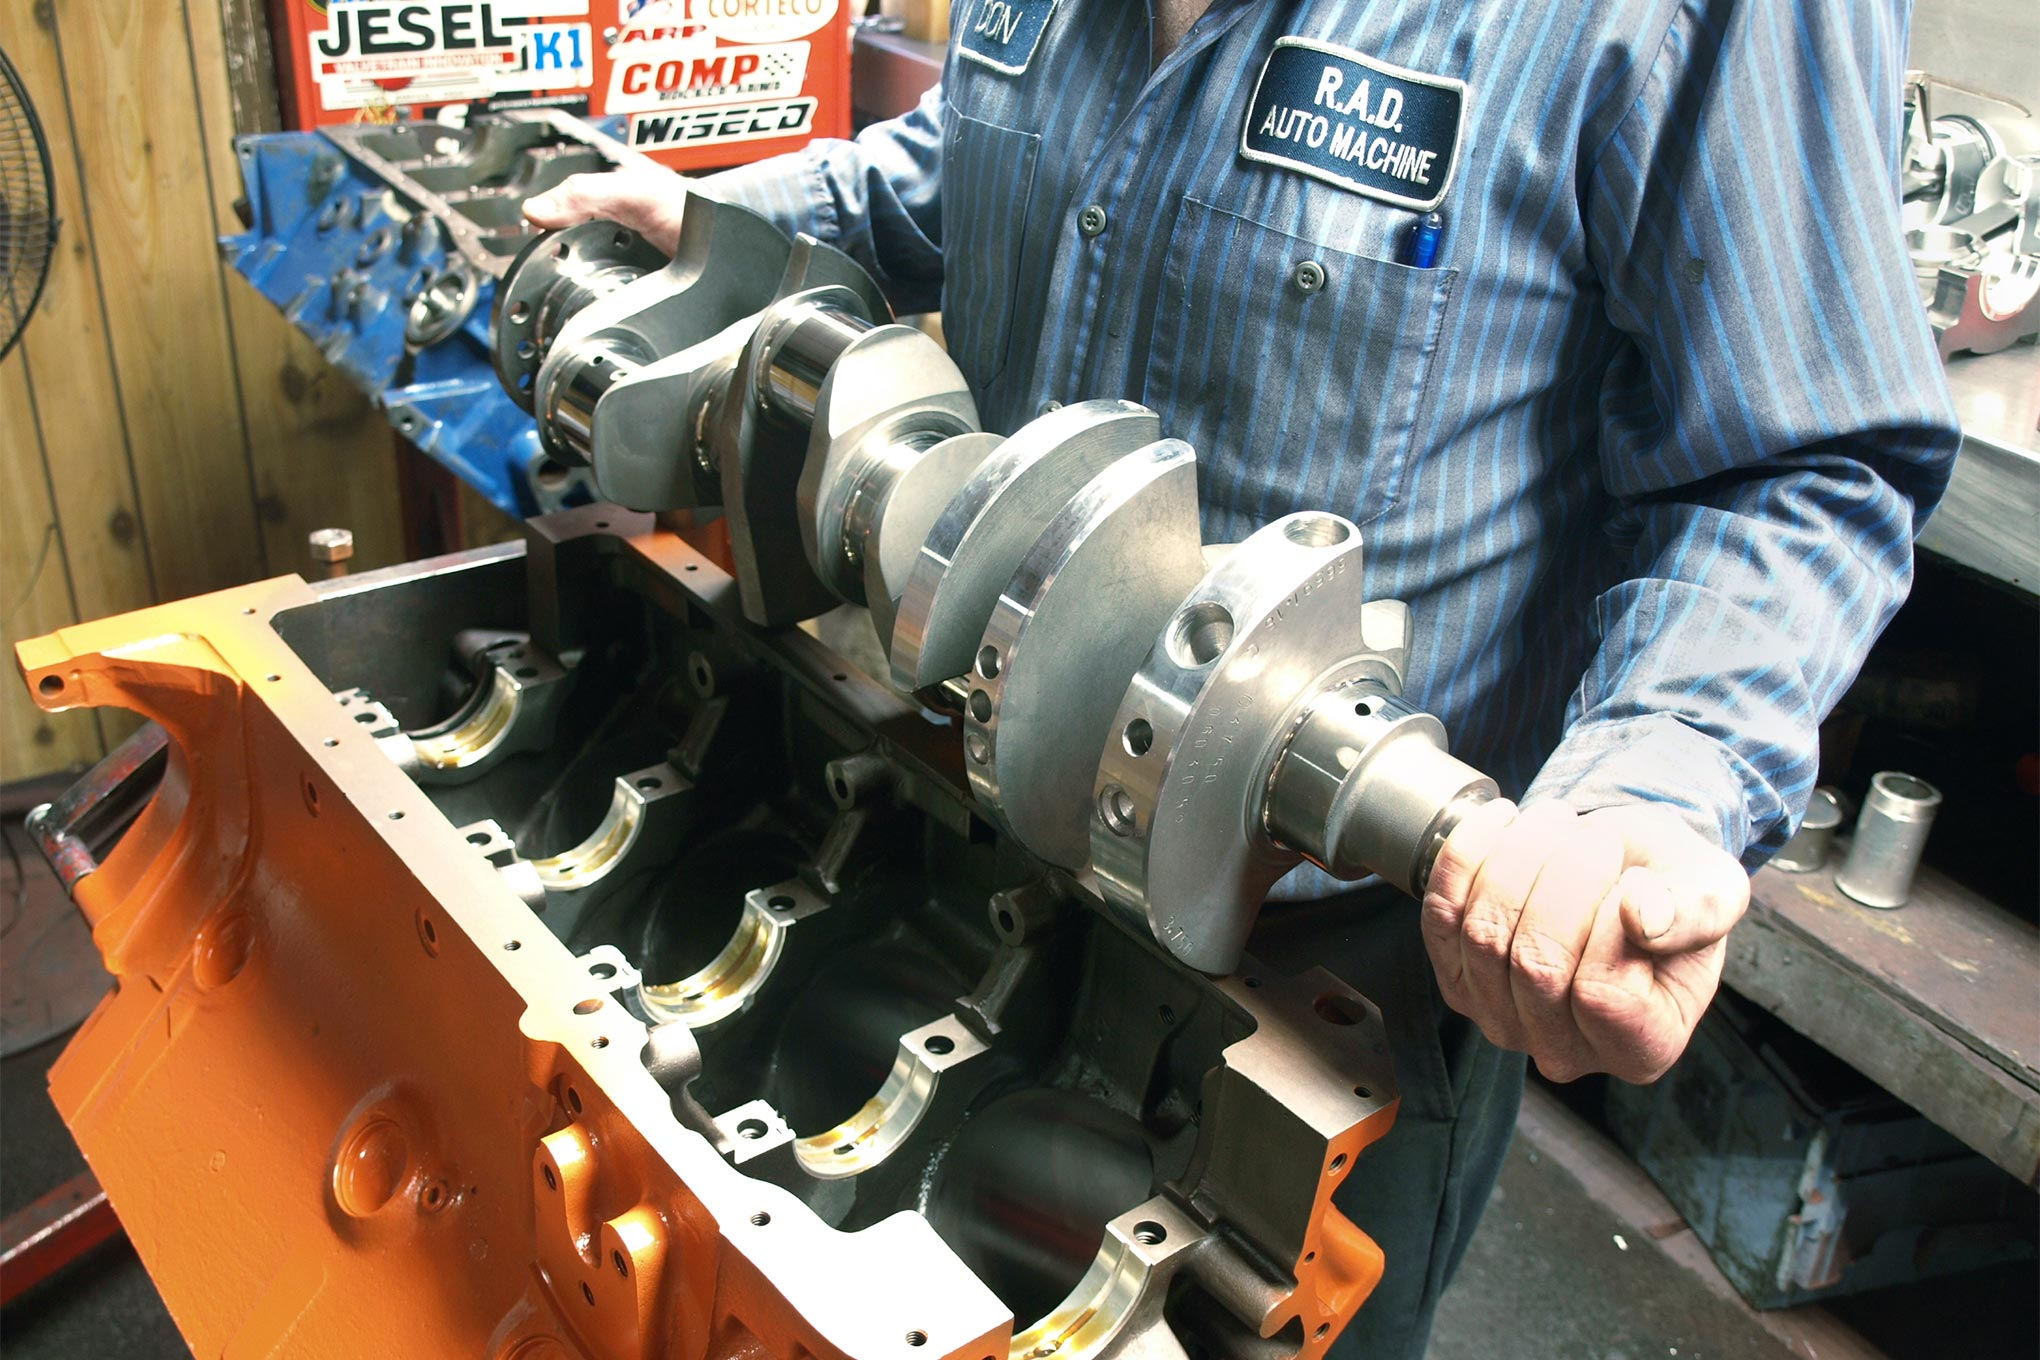 After micro-polishing and rebalancing to accommodate the lighter pistons, the 69.4-pound, forged 4340 steel crank goes into the block. The modern crank retains the eight-bolt flange and fully radiused fillets of the original Street Hemi. The bob weight is 2,598 grams.